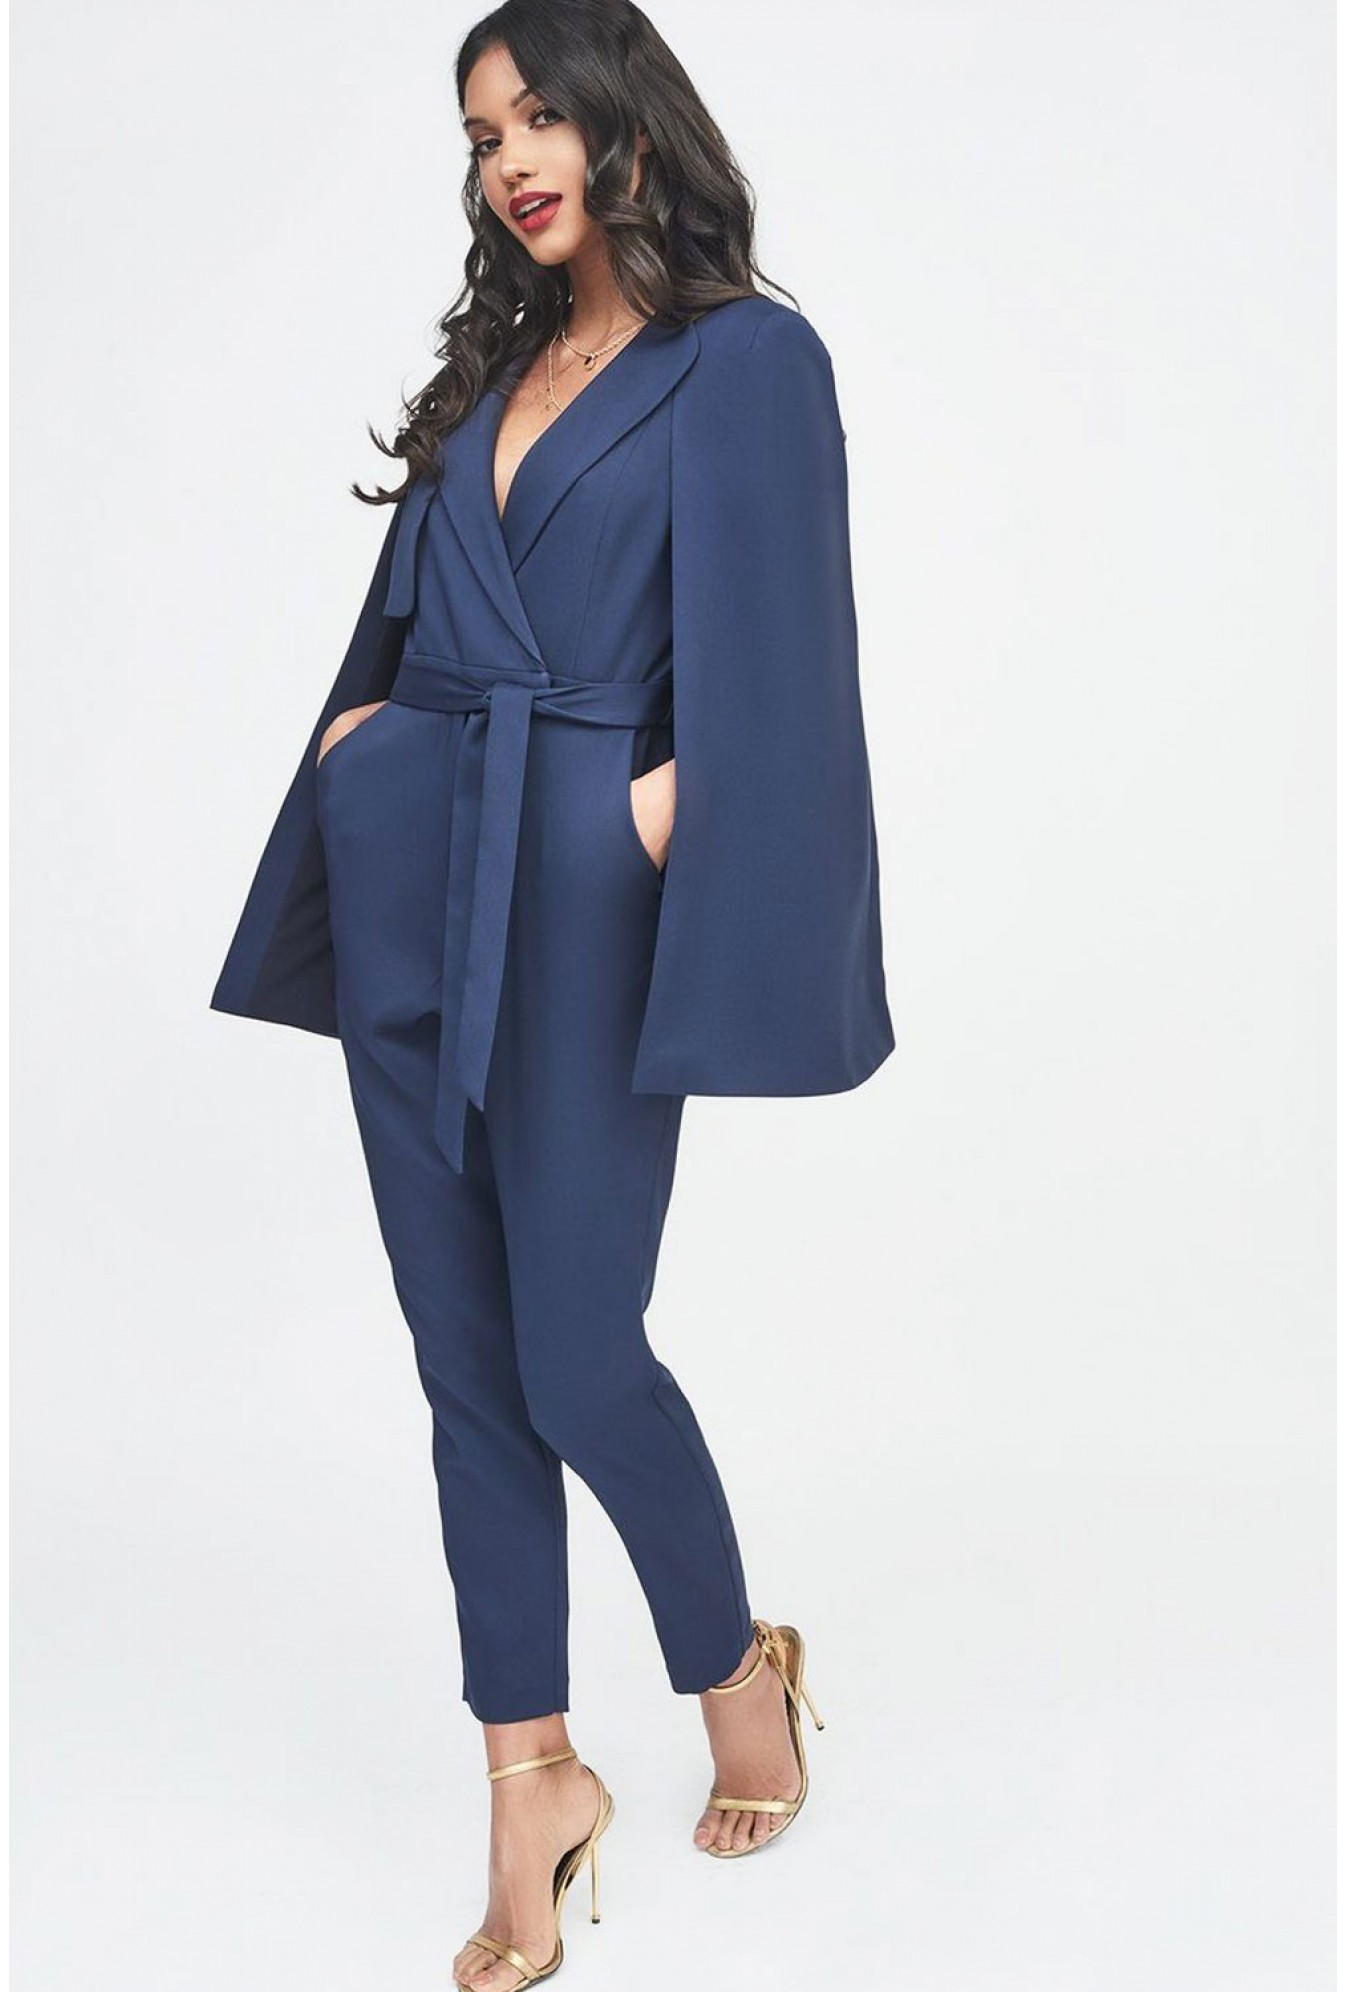 More Views. Lavish Alice Tailored Cape Jumpsuit in Navy. Soho Market 649b82c13